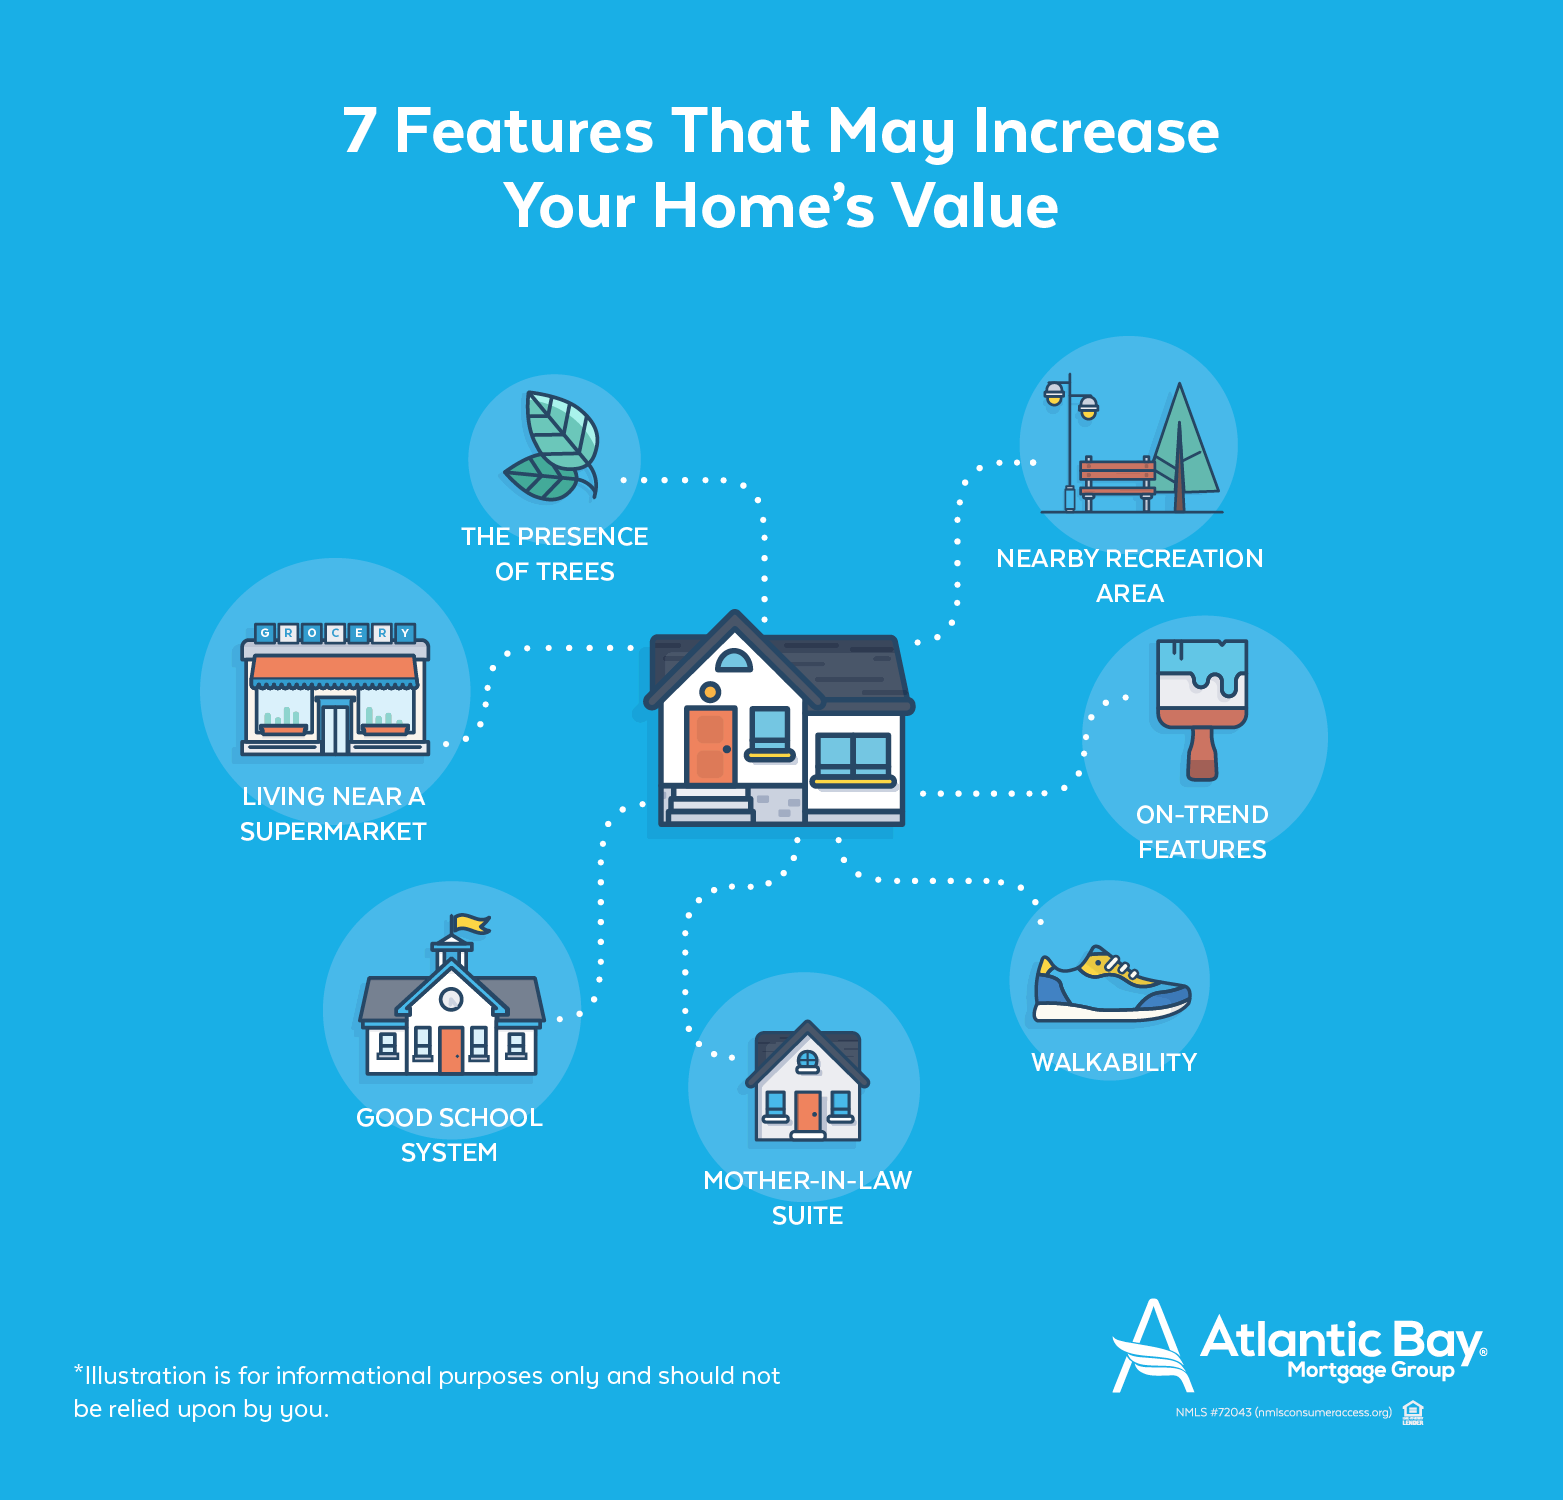 7 Features That May Increase Your Home's Value